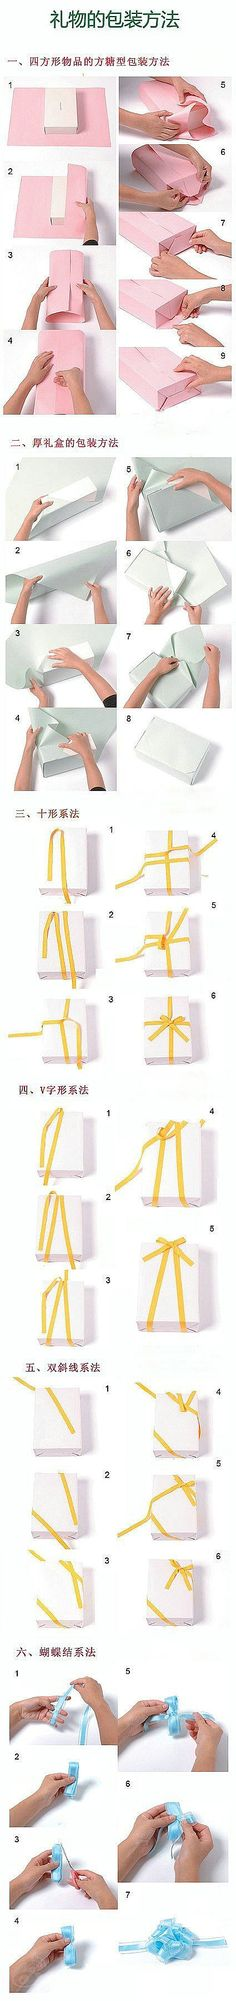 Beautiful handmade DIY gift ideas and practical 〖〗 How can packaging methods ceremony . Present Wrapping, Wrapping Ideas, Japanese Gift Wrapping, Gift Wrapping Tutorial, Christmas Wrapping, Christmas Diy, Craft Gifts, Diy Gifts, Handmade Gifts